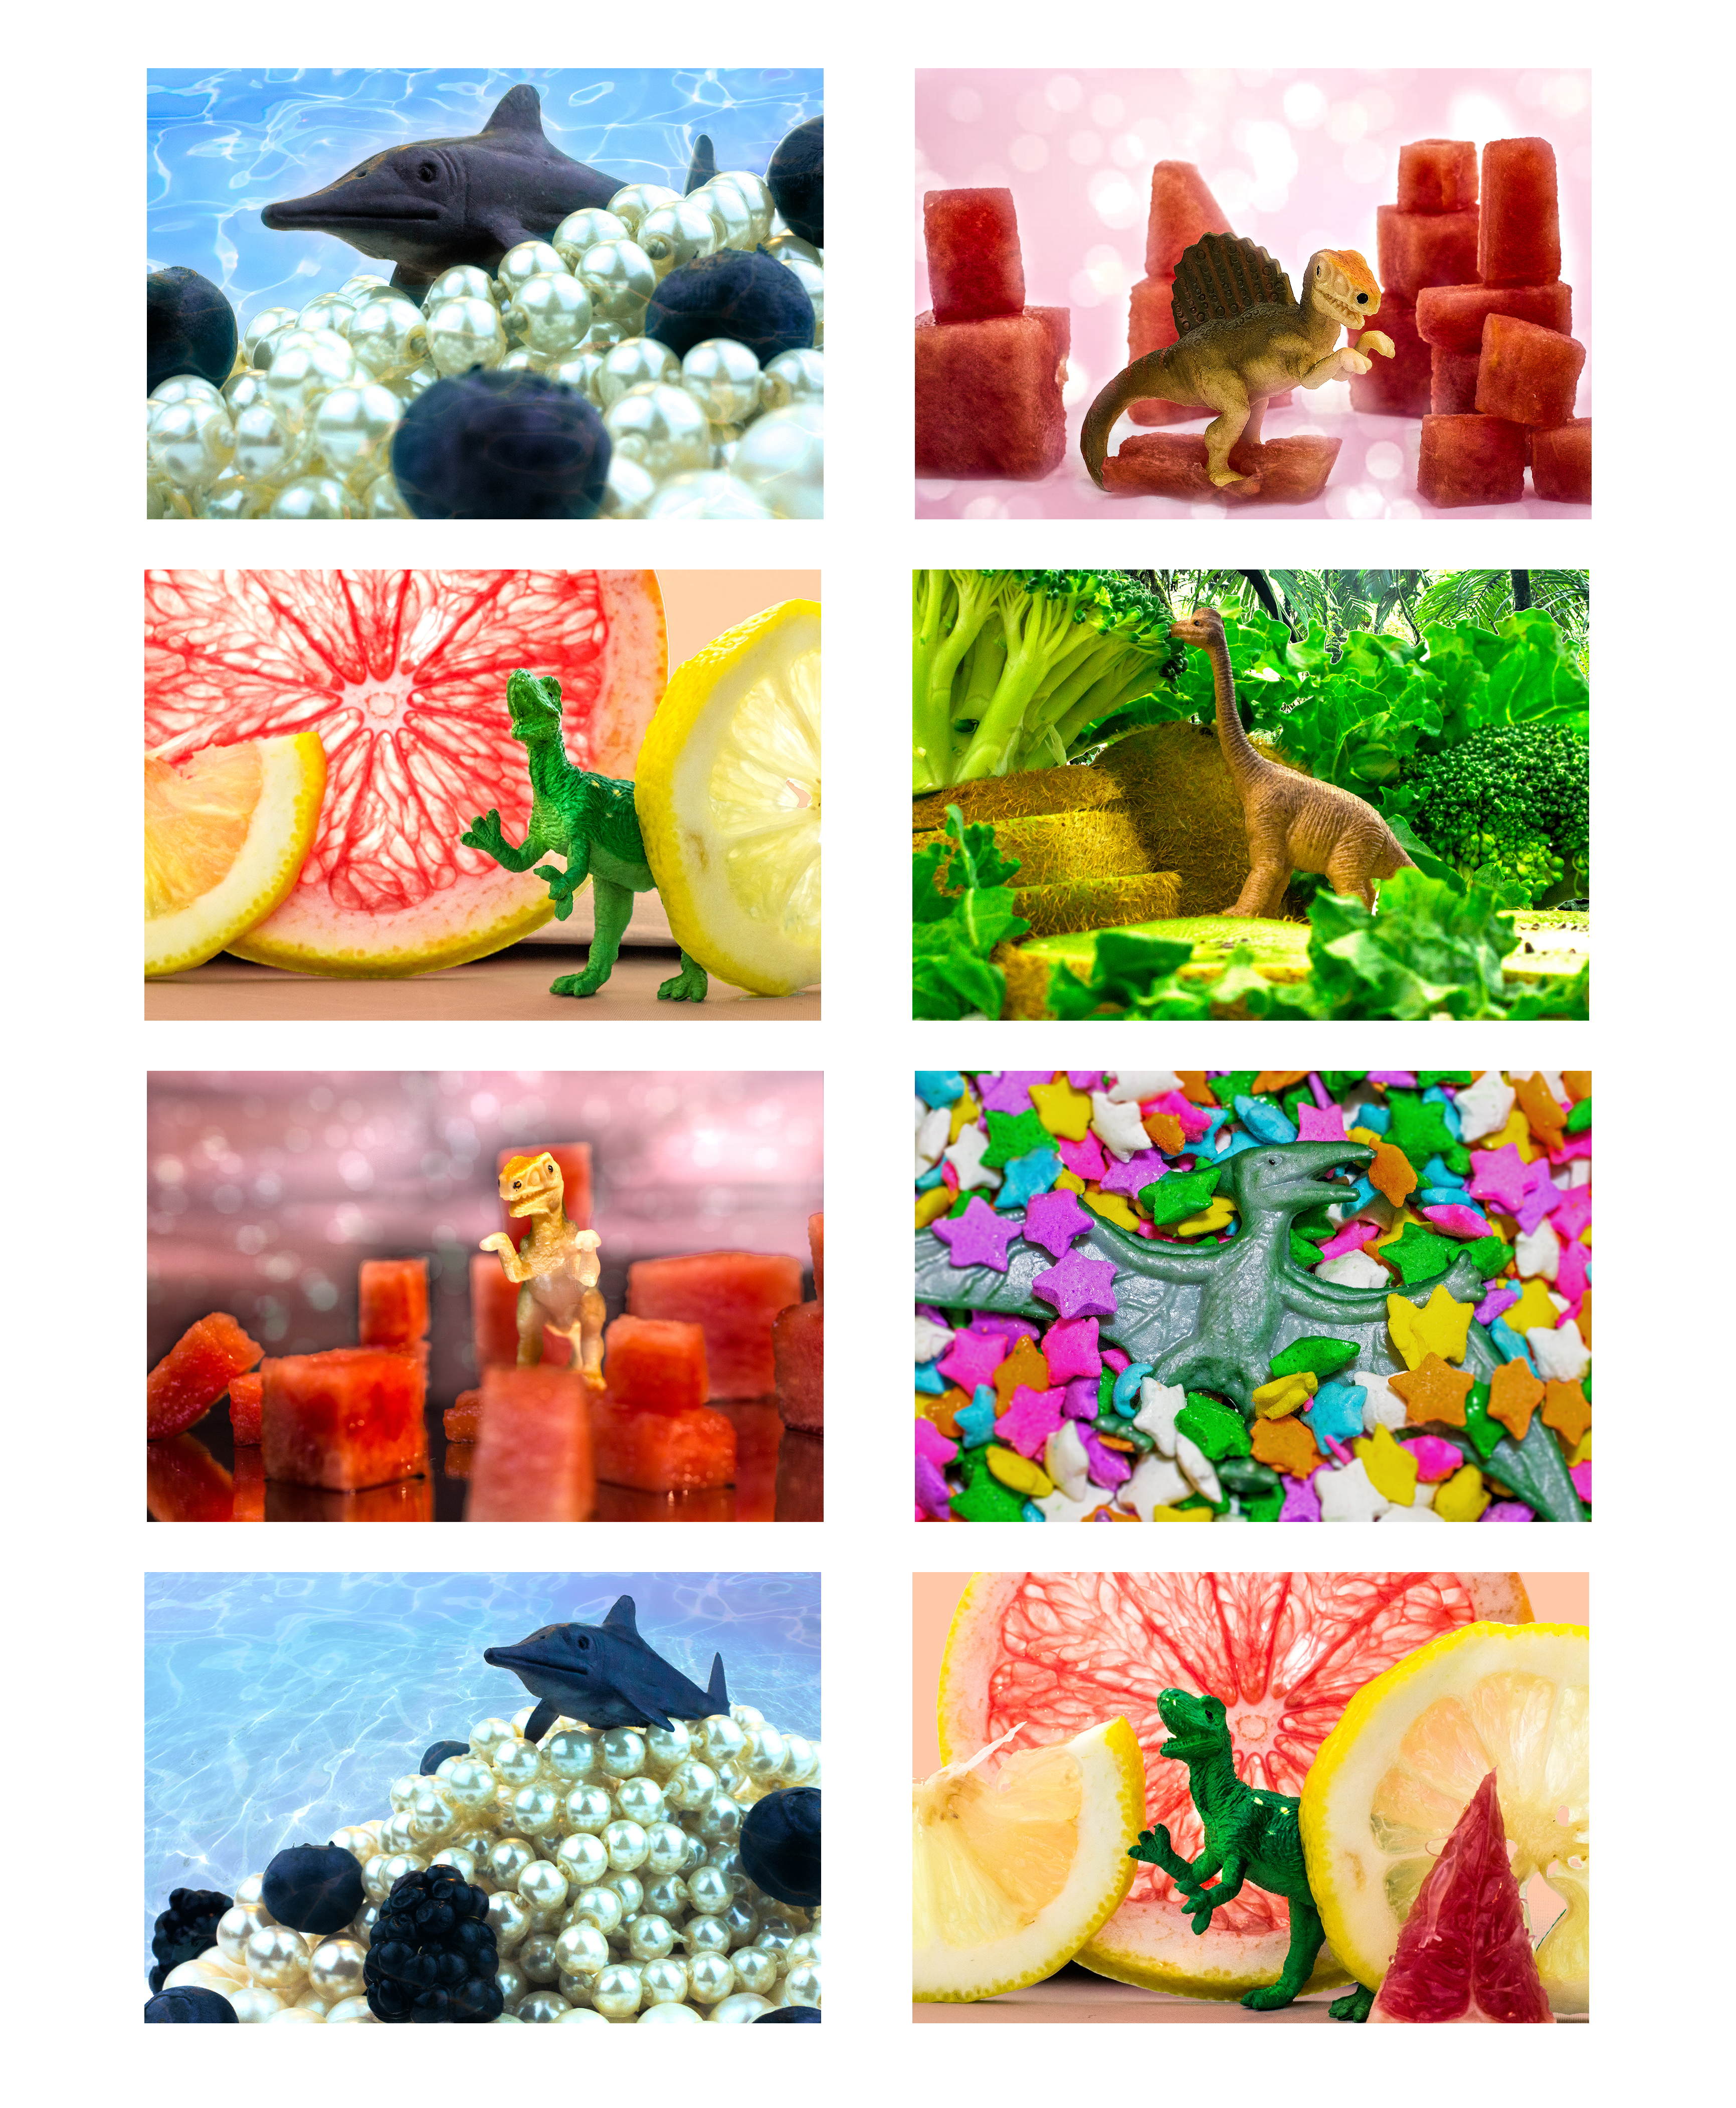 Victoria_Meng_Project2_Layout_Dinosaurs_Macro_Still_Life_Surreal_Colorful_Food_Sprinkles_Fruit